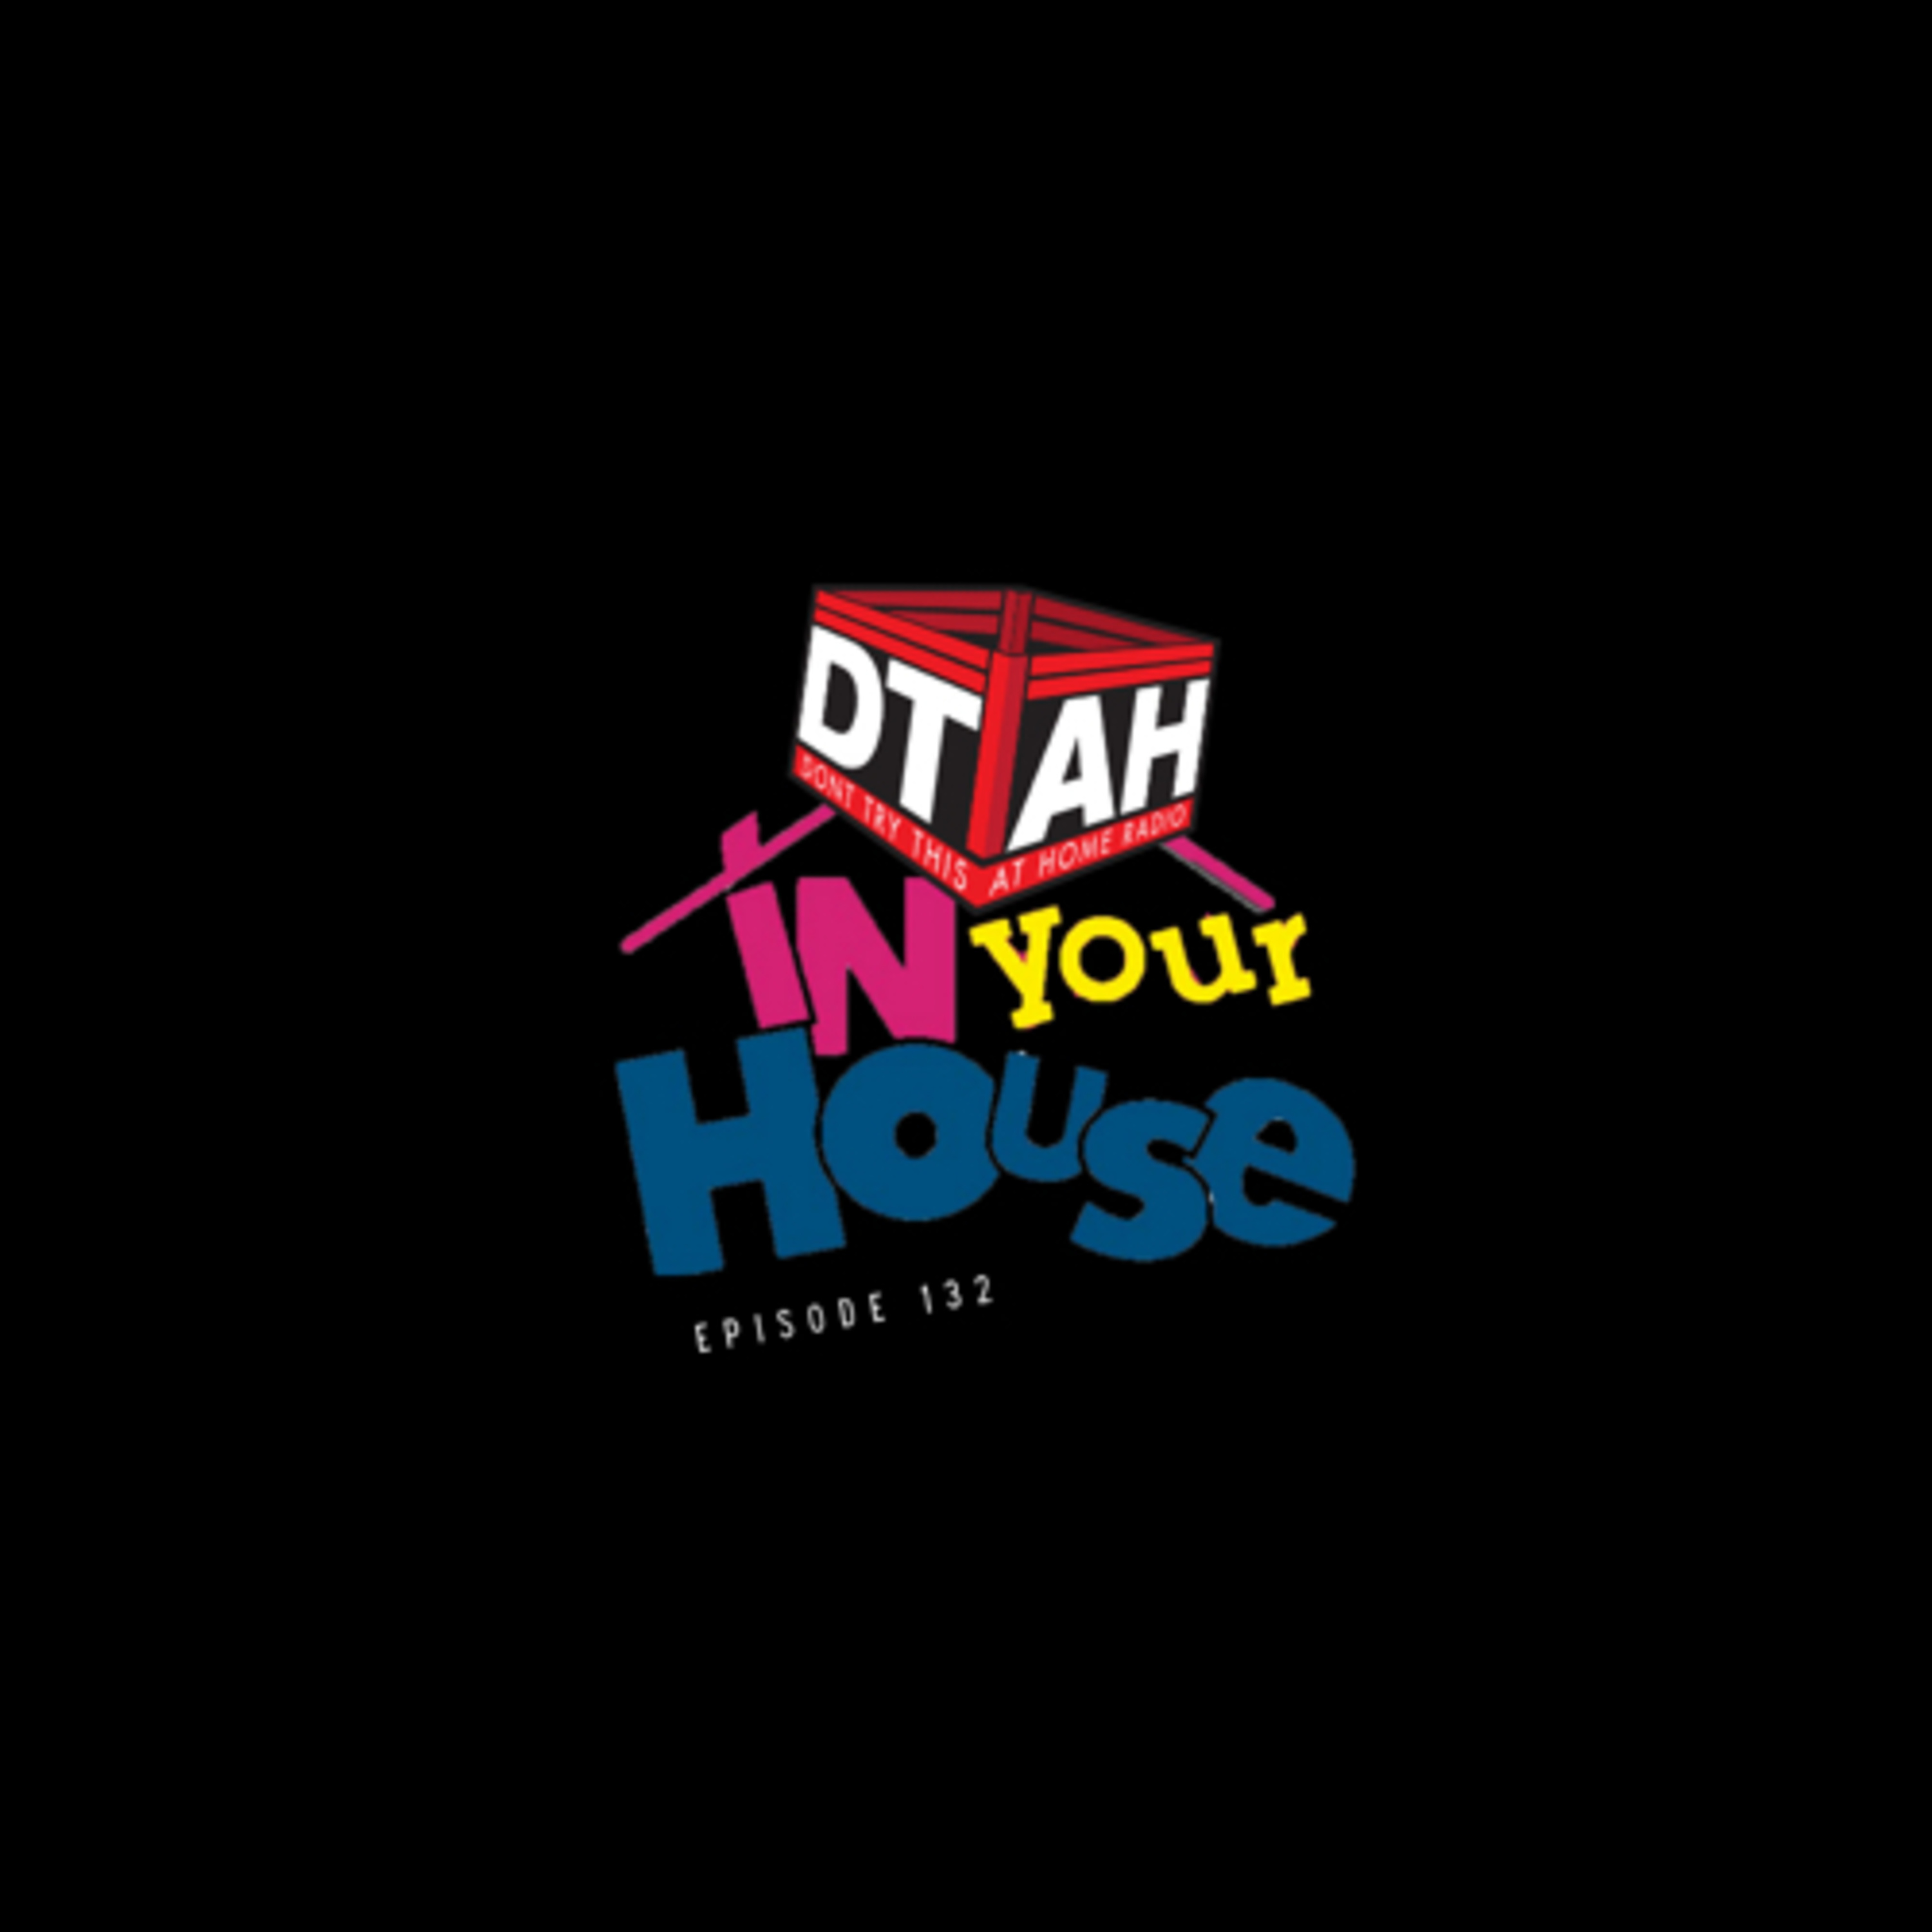 Episode 132: In Your House